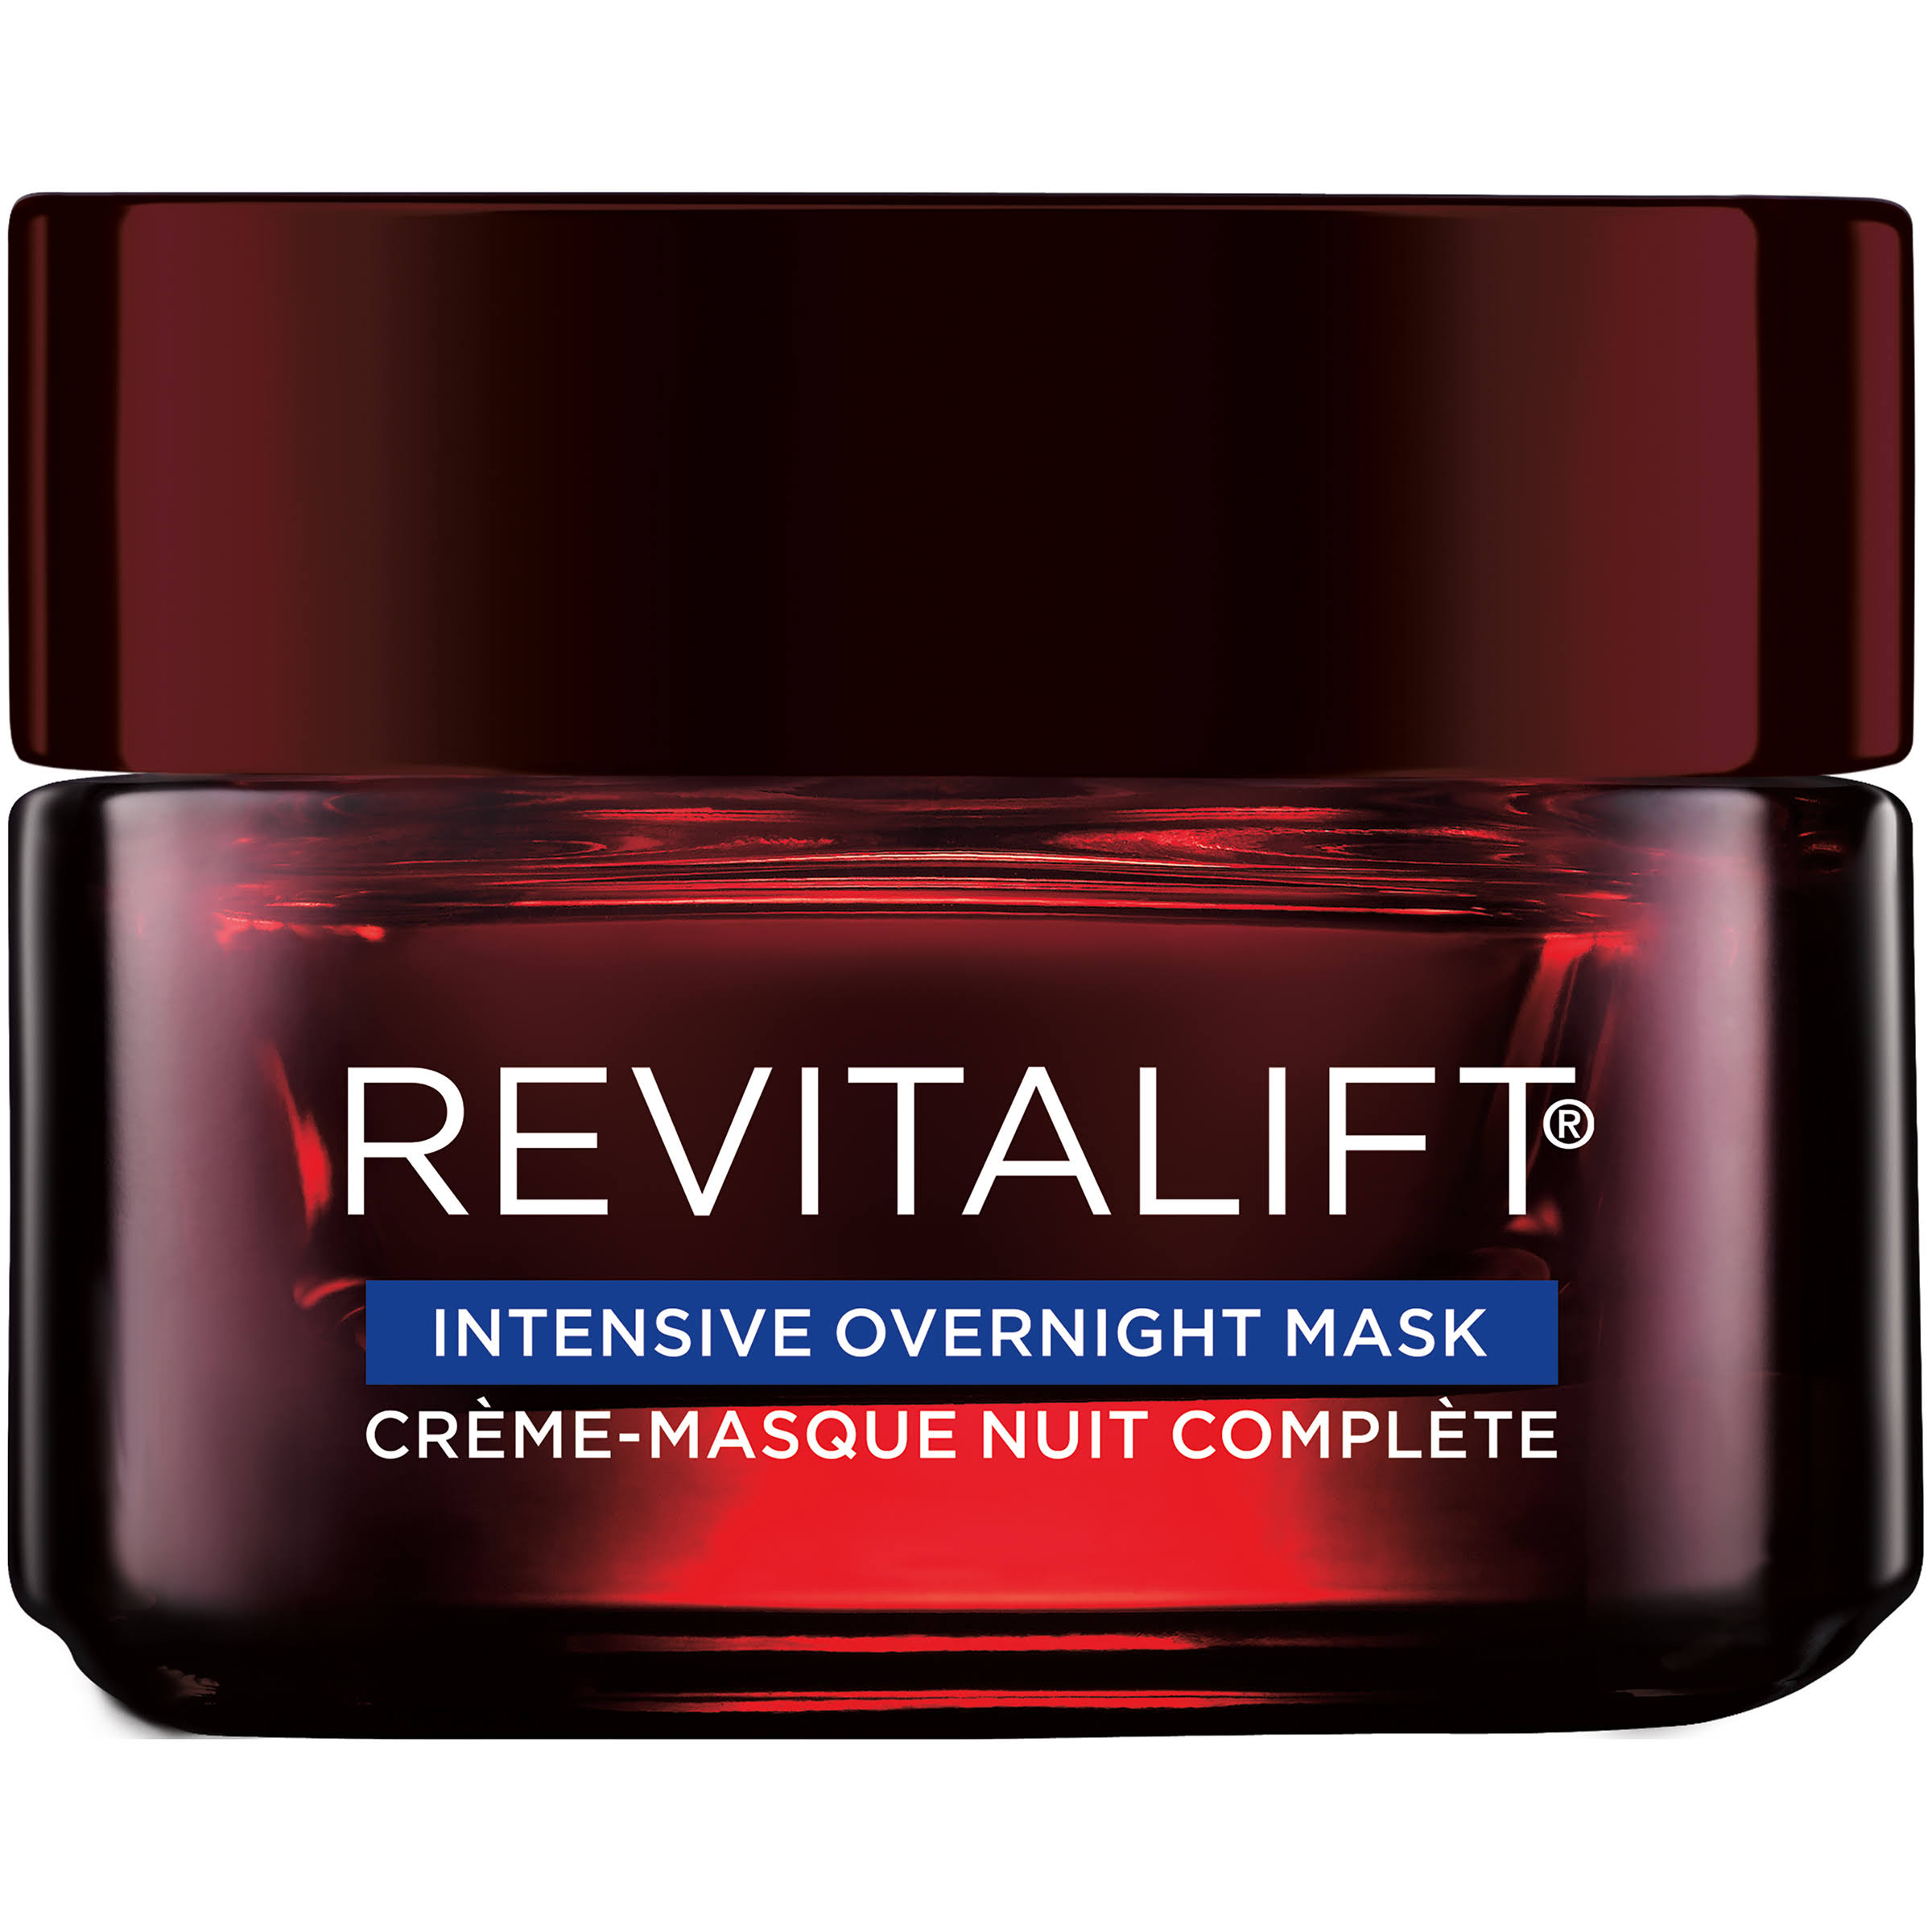 L'oreal Paris Revitalift Triple Power Night Mask - 1.7oz